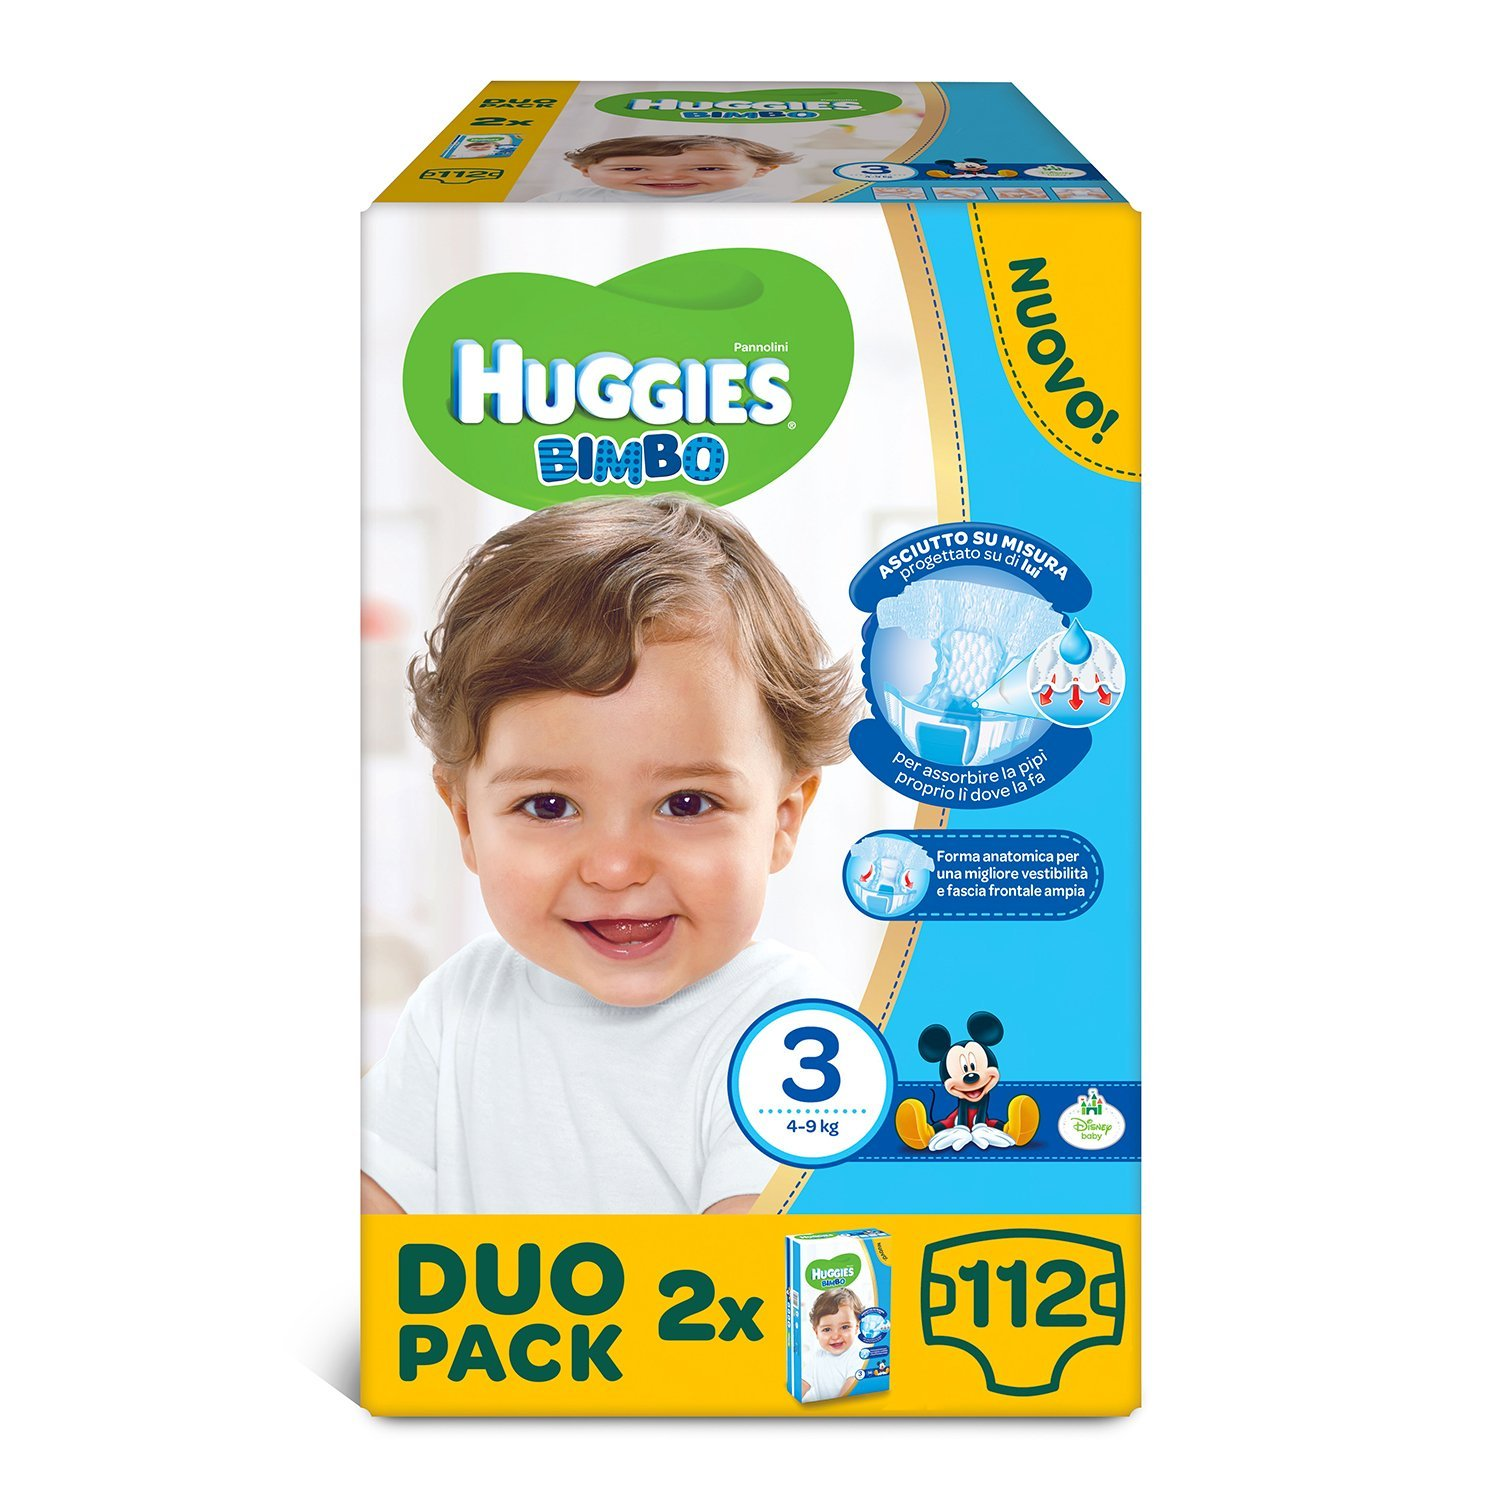 Huggies - Bimbo - Nappies - Size 3 (4-9 kg) - 2 x 56 Nappies Kimberly Clark HUGGBOYMID56